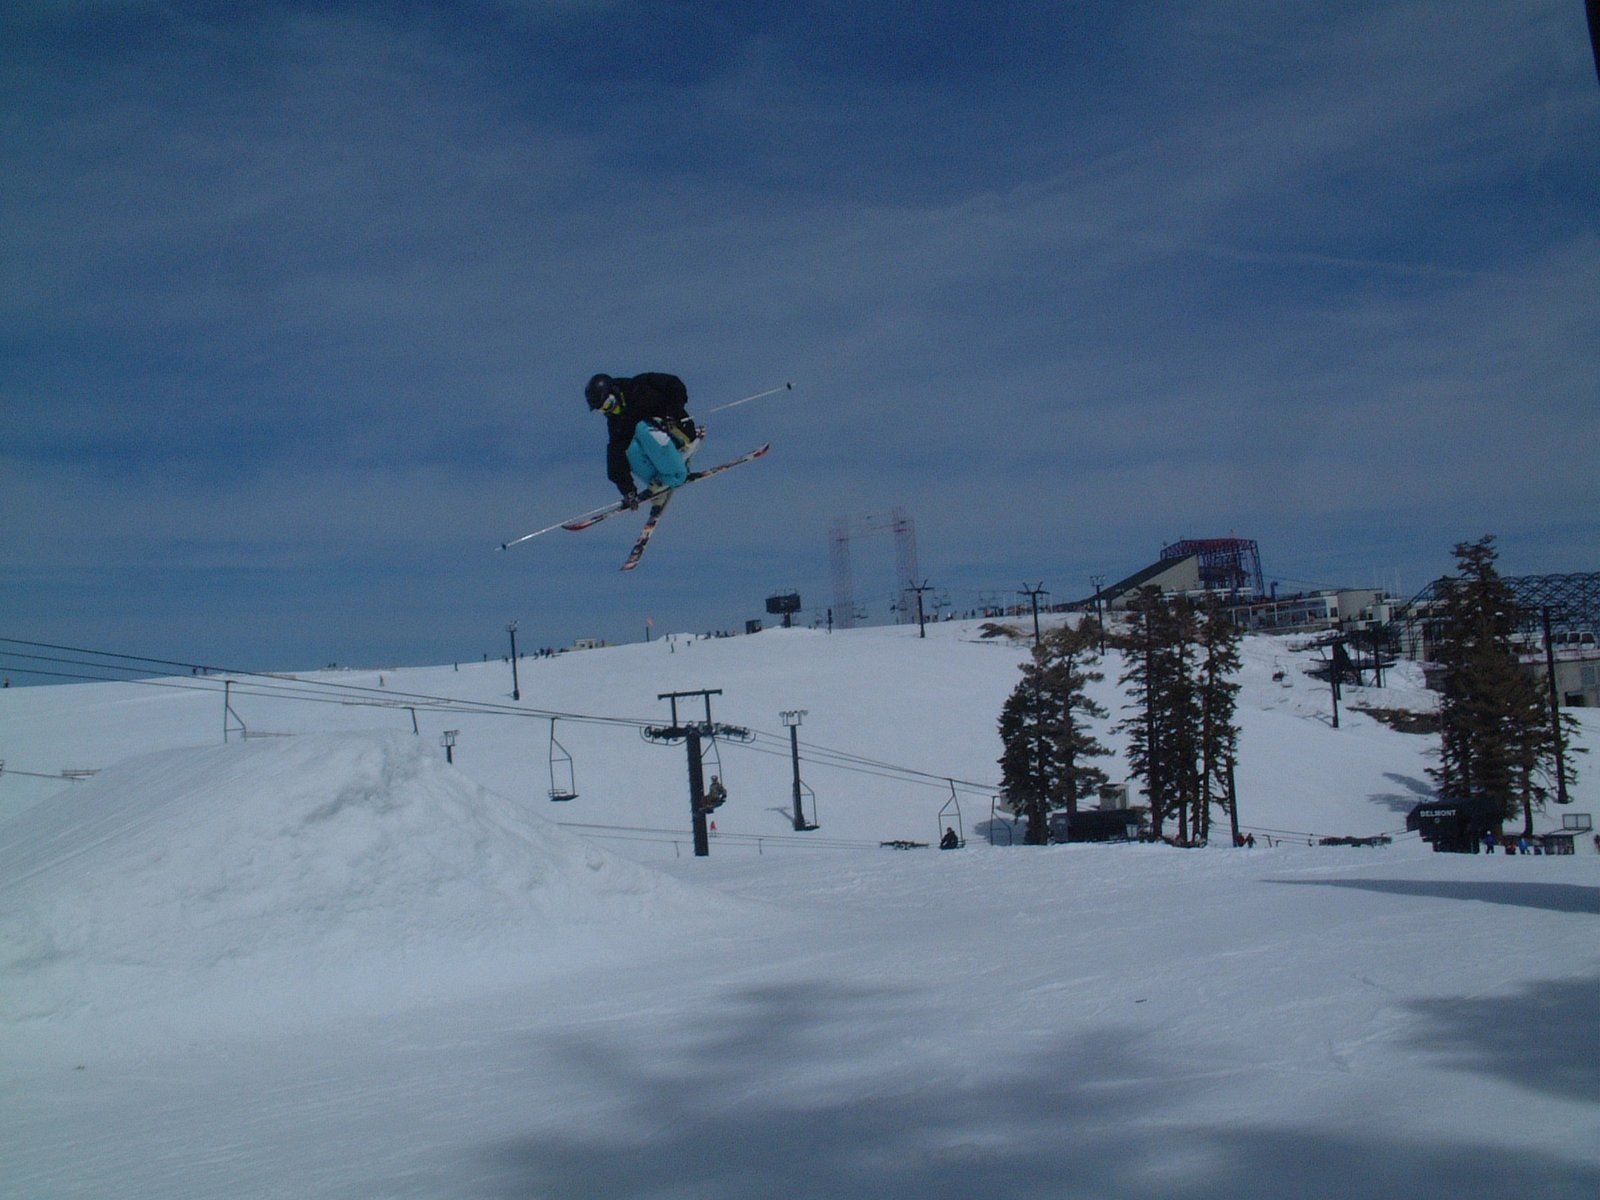 Mute 7 at Squaw